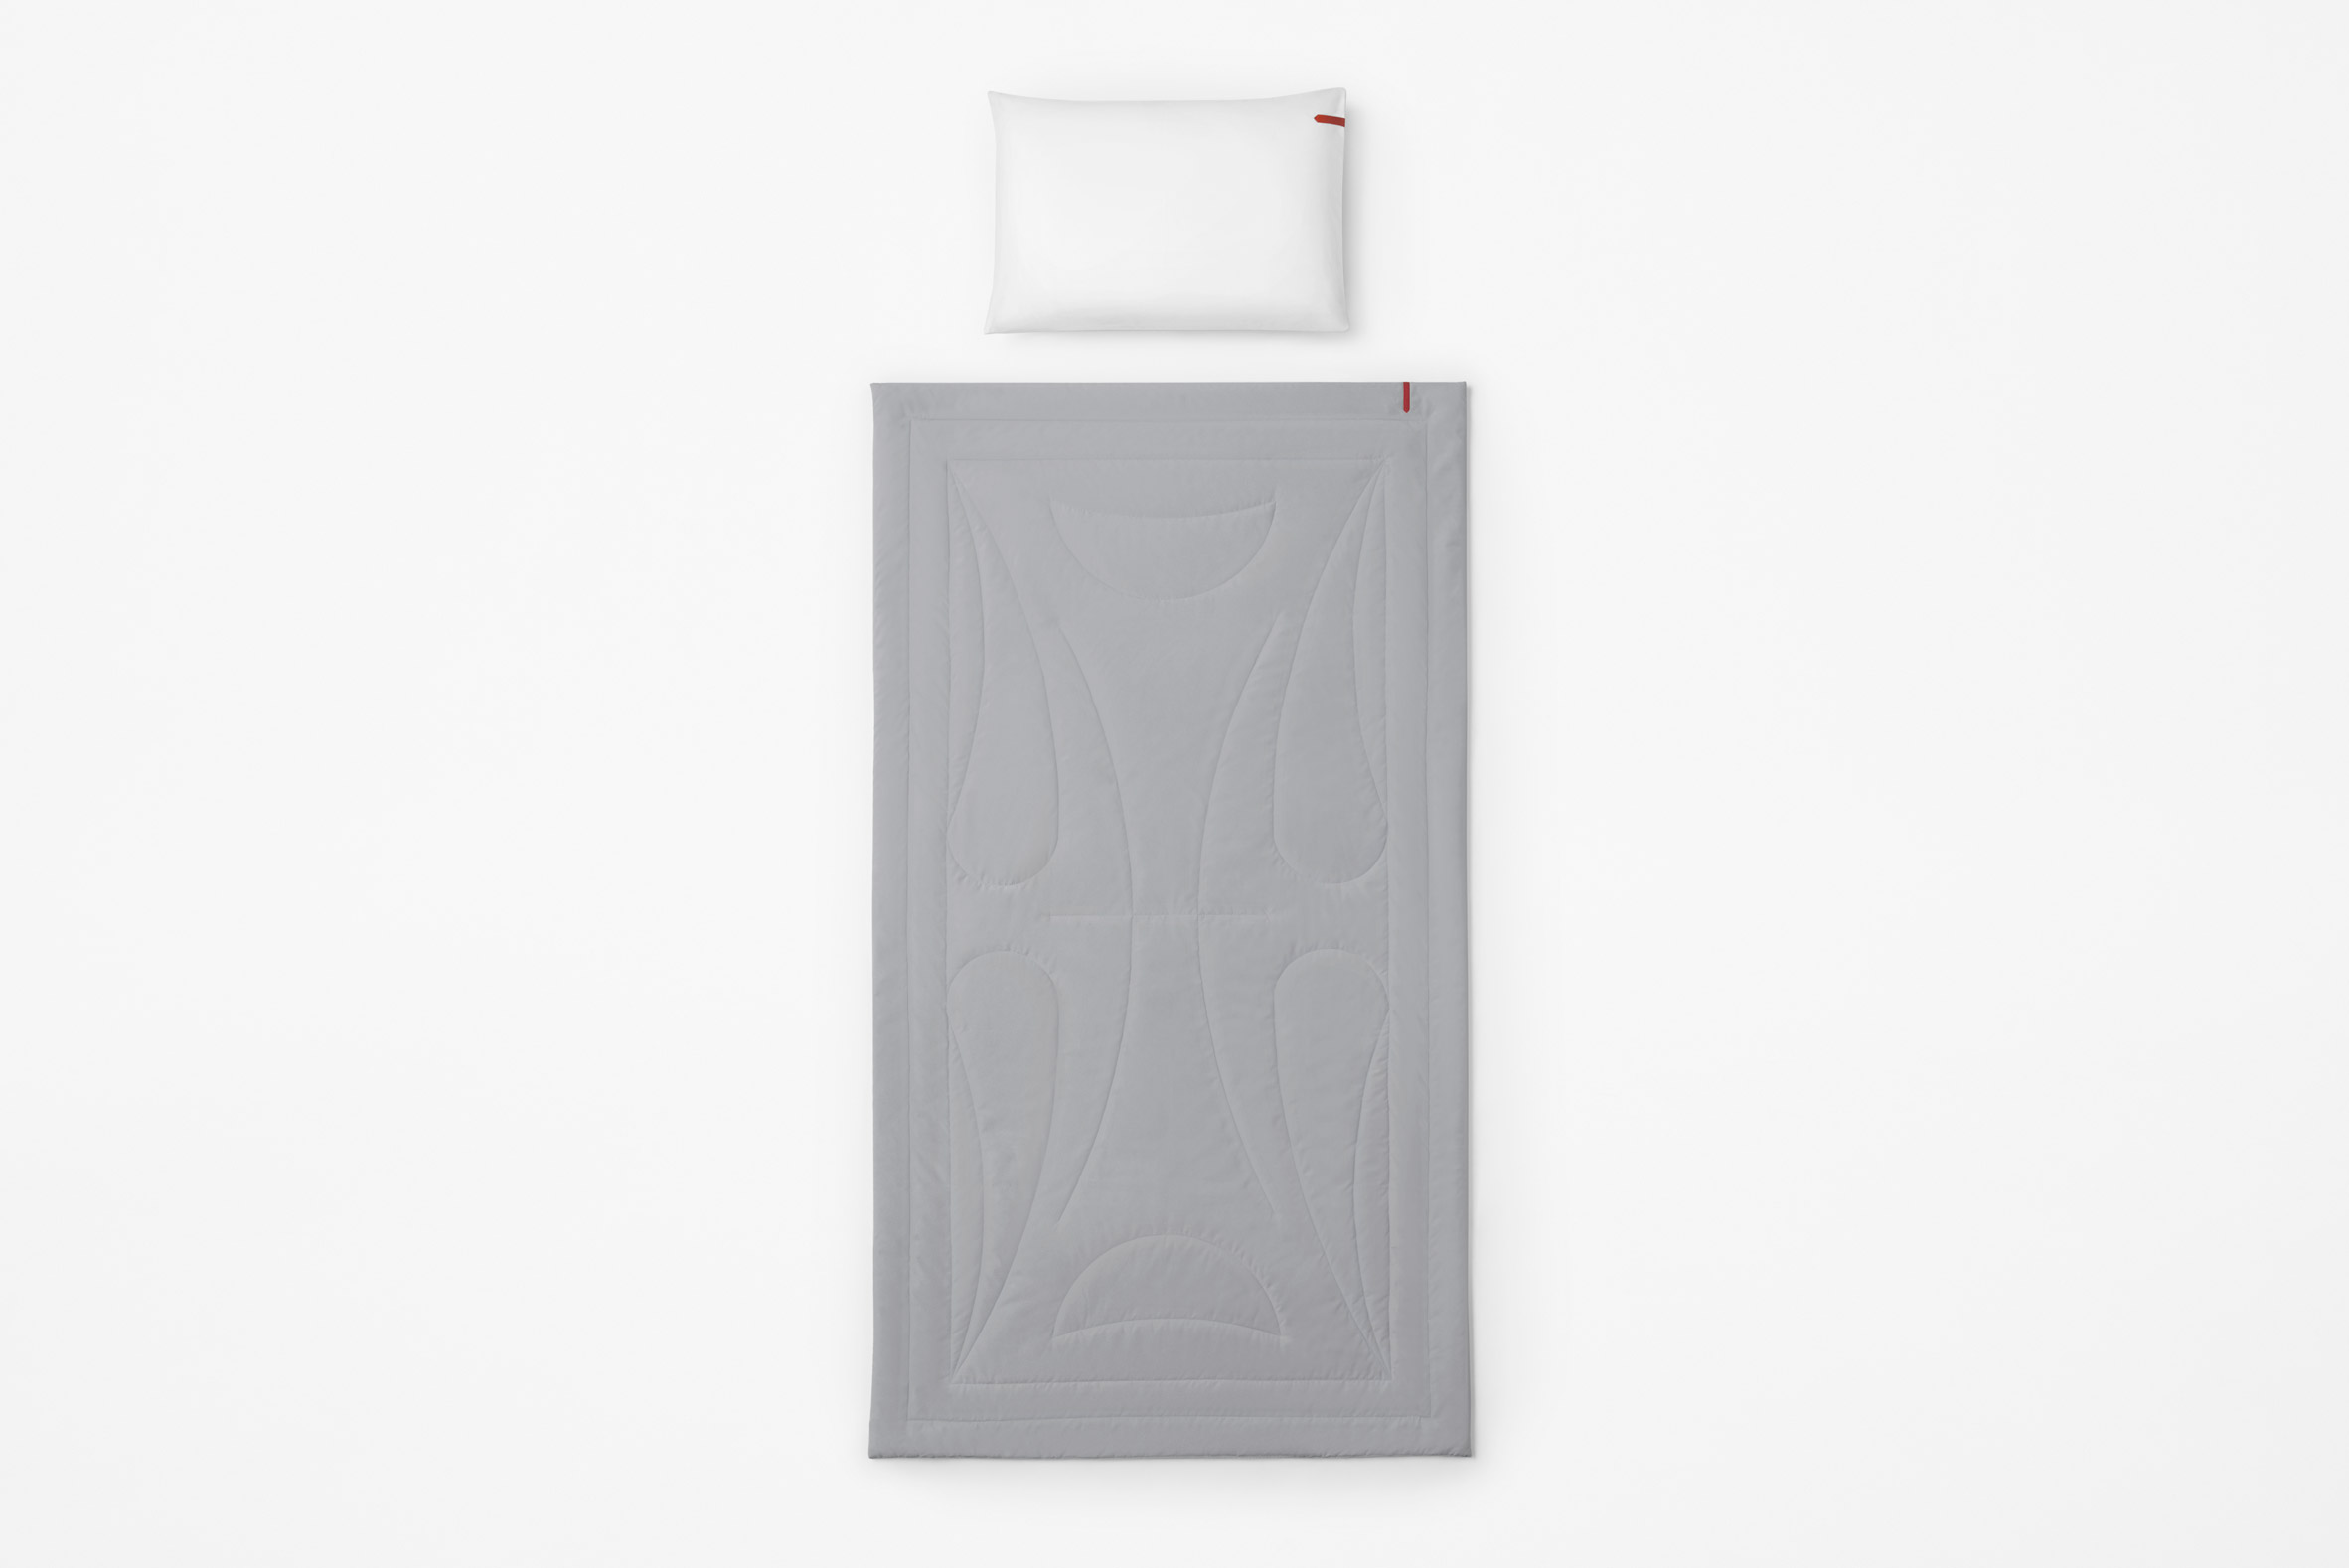 Pillow and blanket by Nendo for Japan Airlines